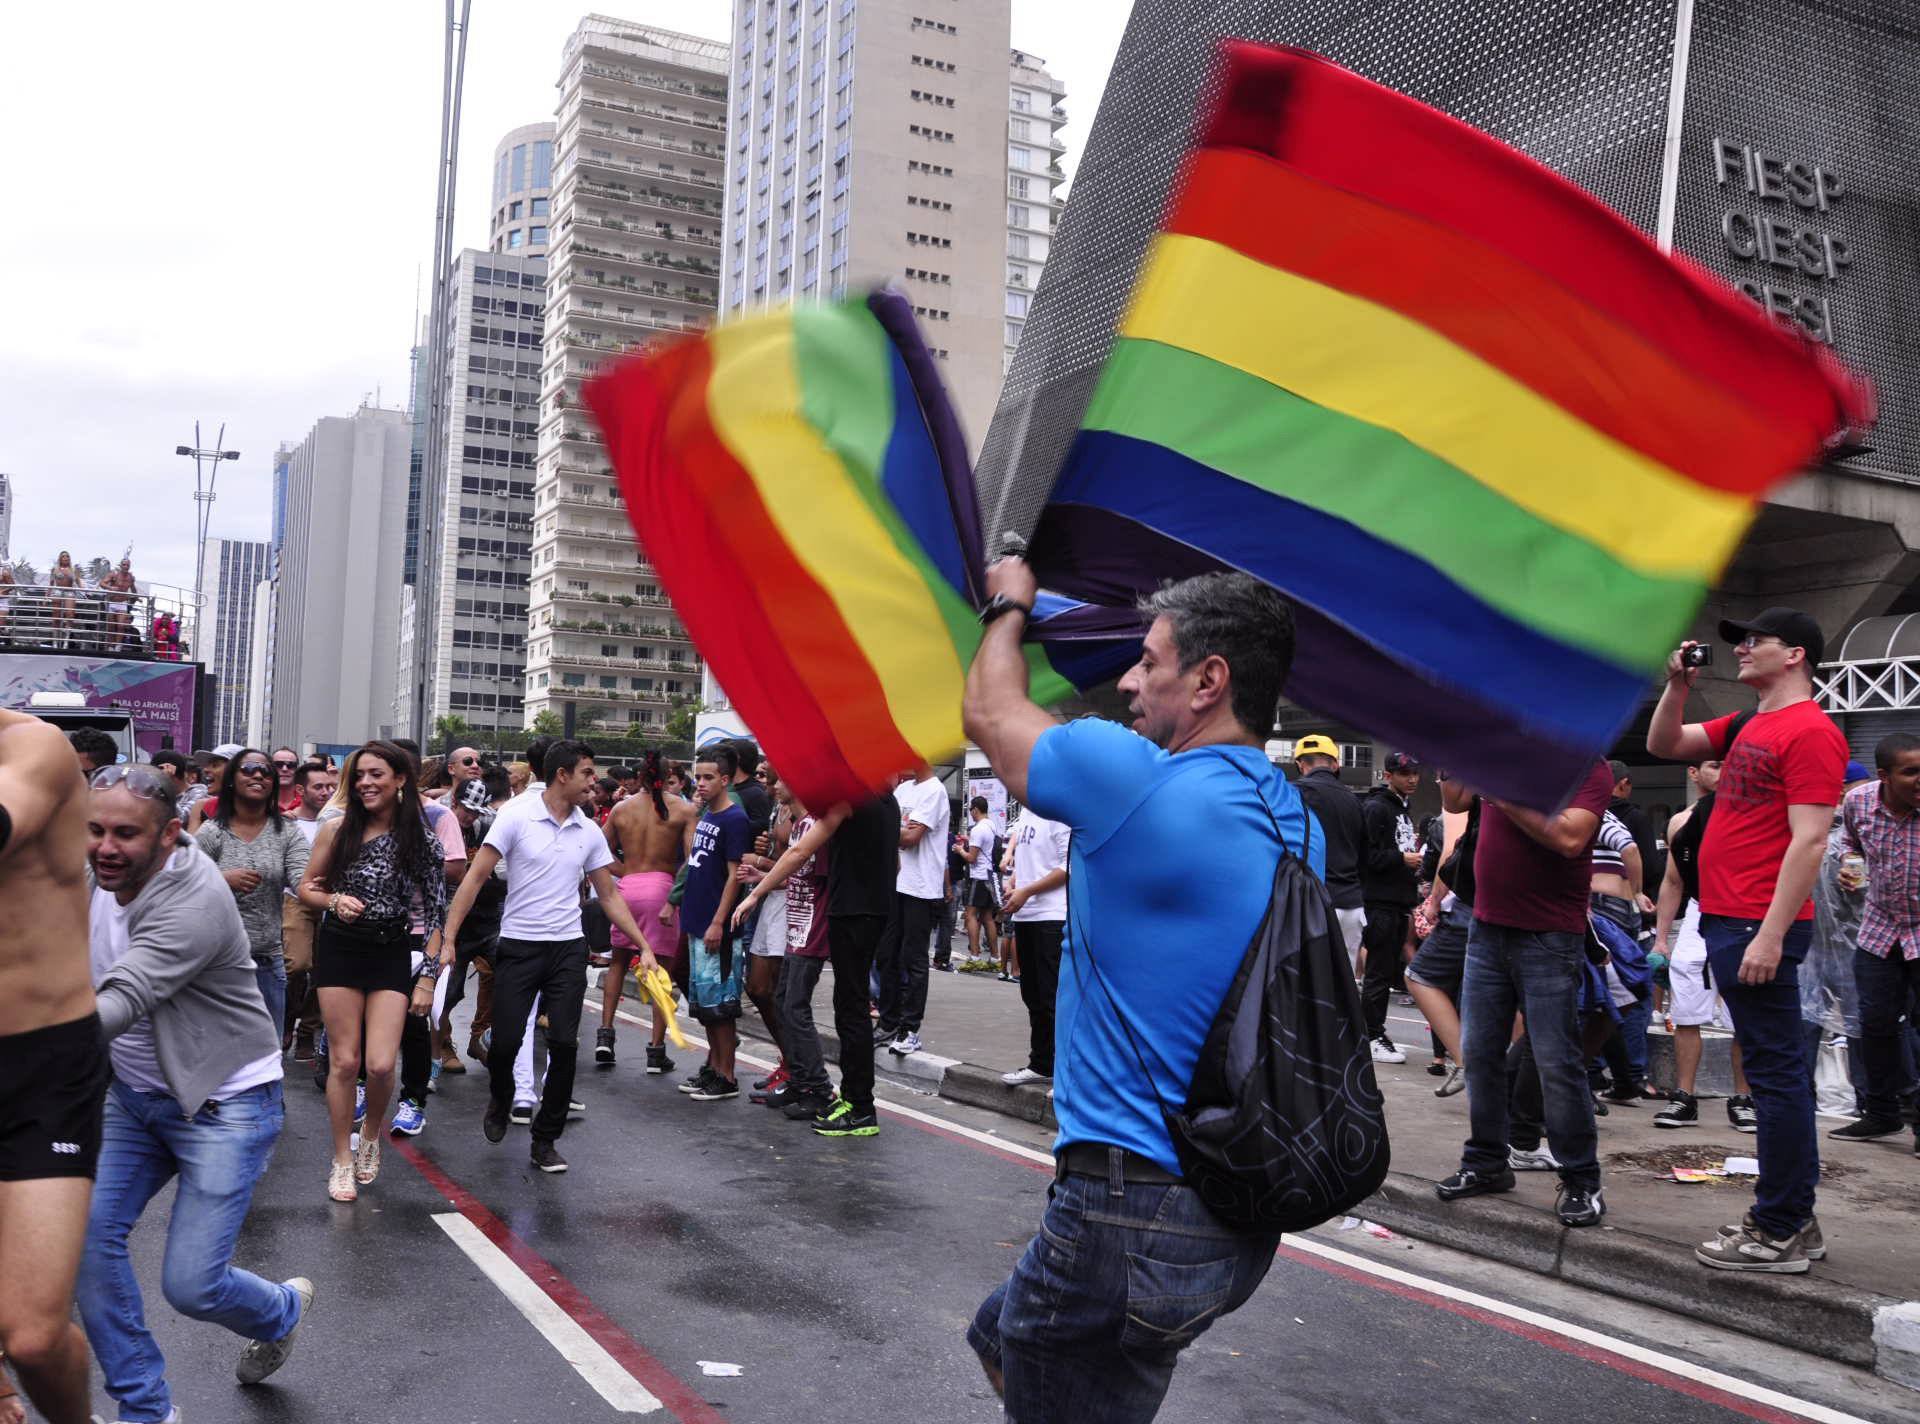 17th Pride Parade LGBT (Lesbian, Gay, Bisexual and Transgender) held in Sao Paulo.